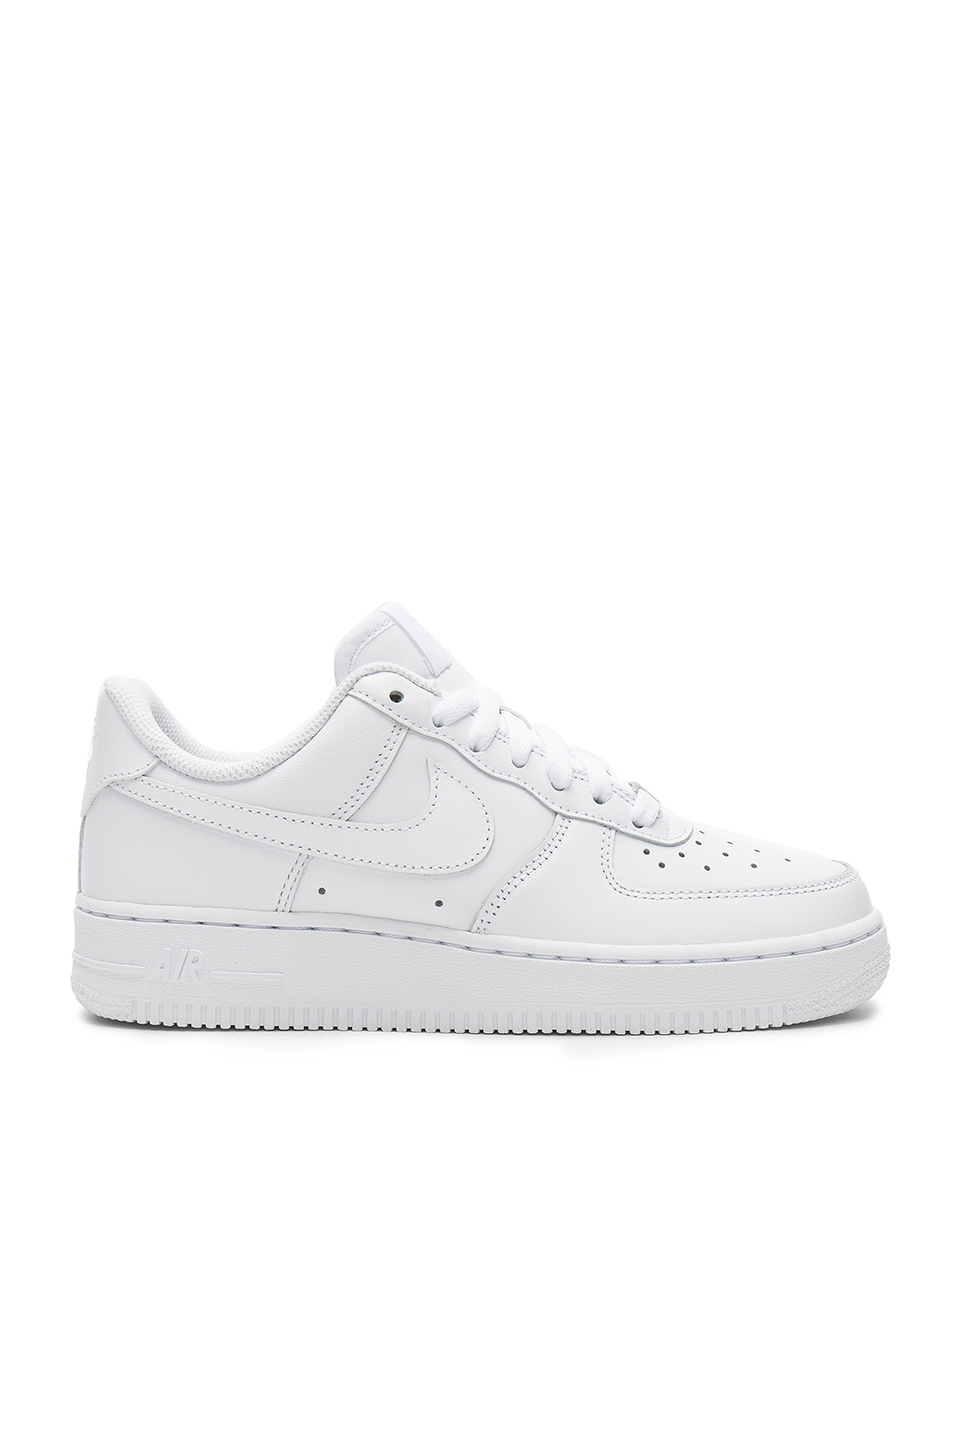 Womens Air Force 1 '07 by Nike, available on revolve.com for £86 Kendall Jenner Shoes Exact Product